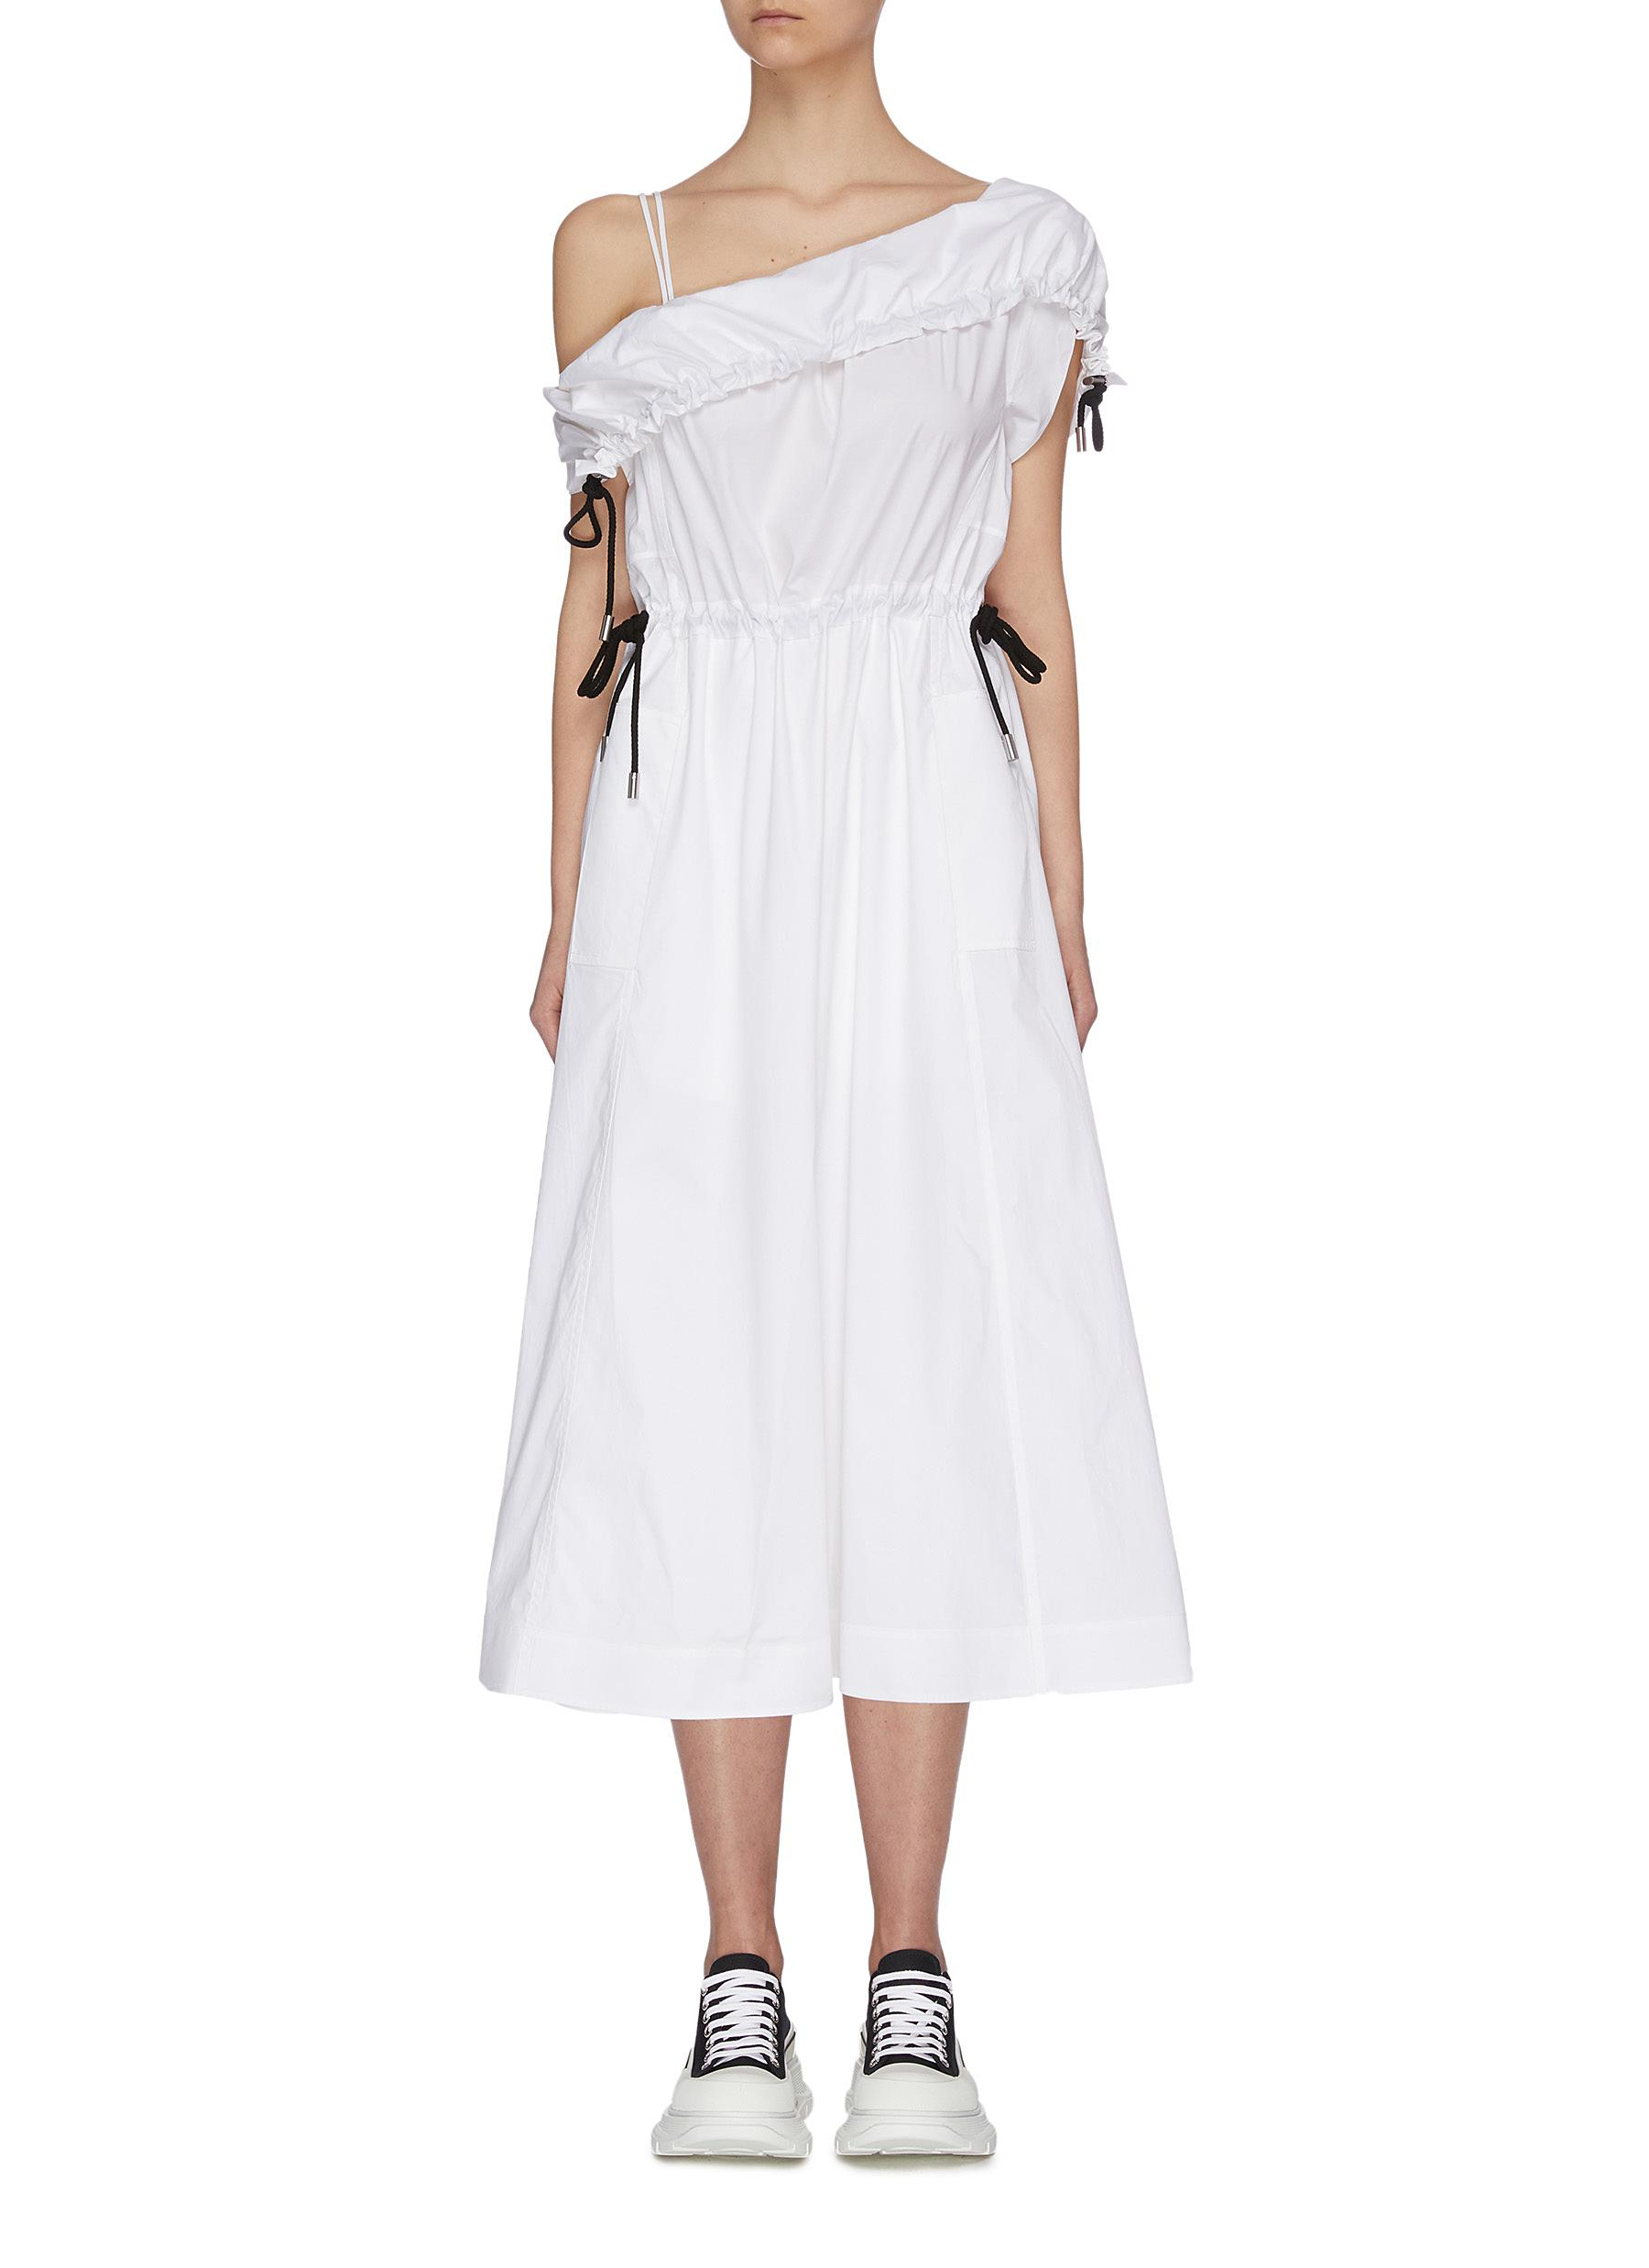 One shoulder parachute utility flared midi dress - 3.1 PHILLIP LIM - Modalova